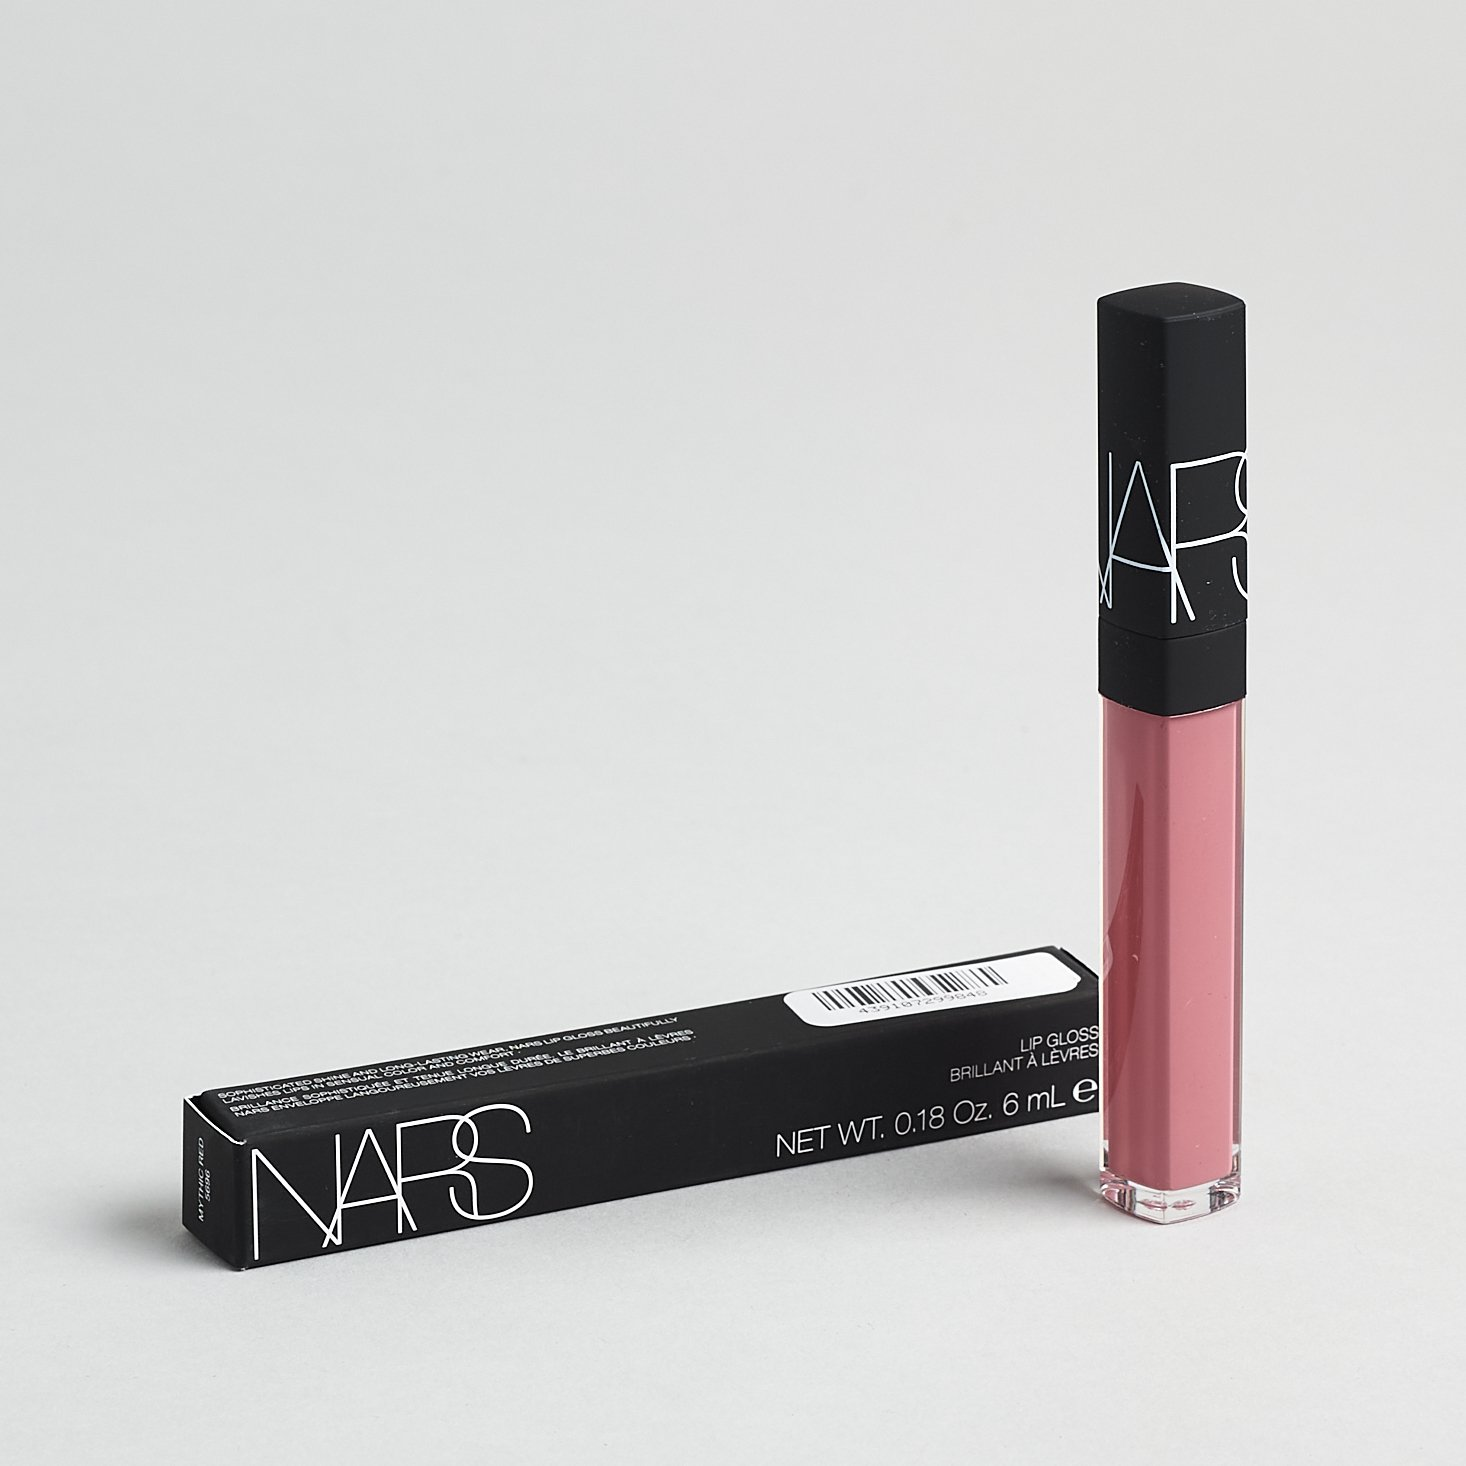 NARS Lip Gloss is Mythic Red with box